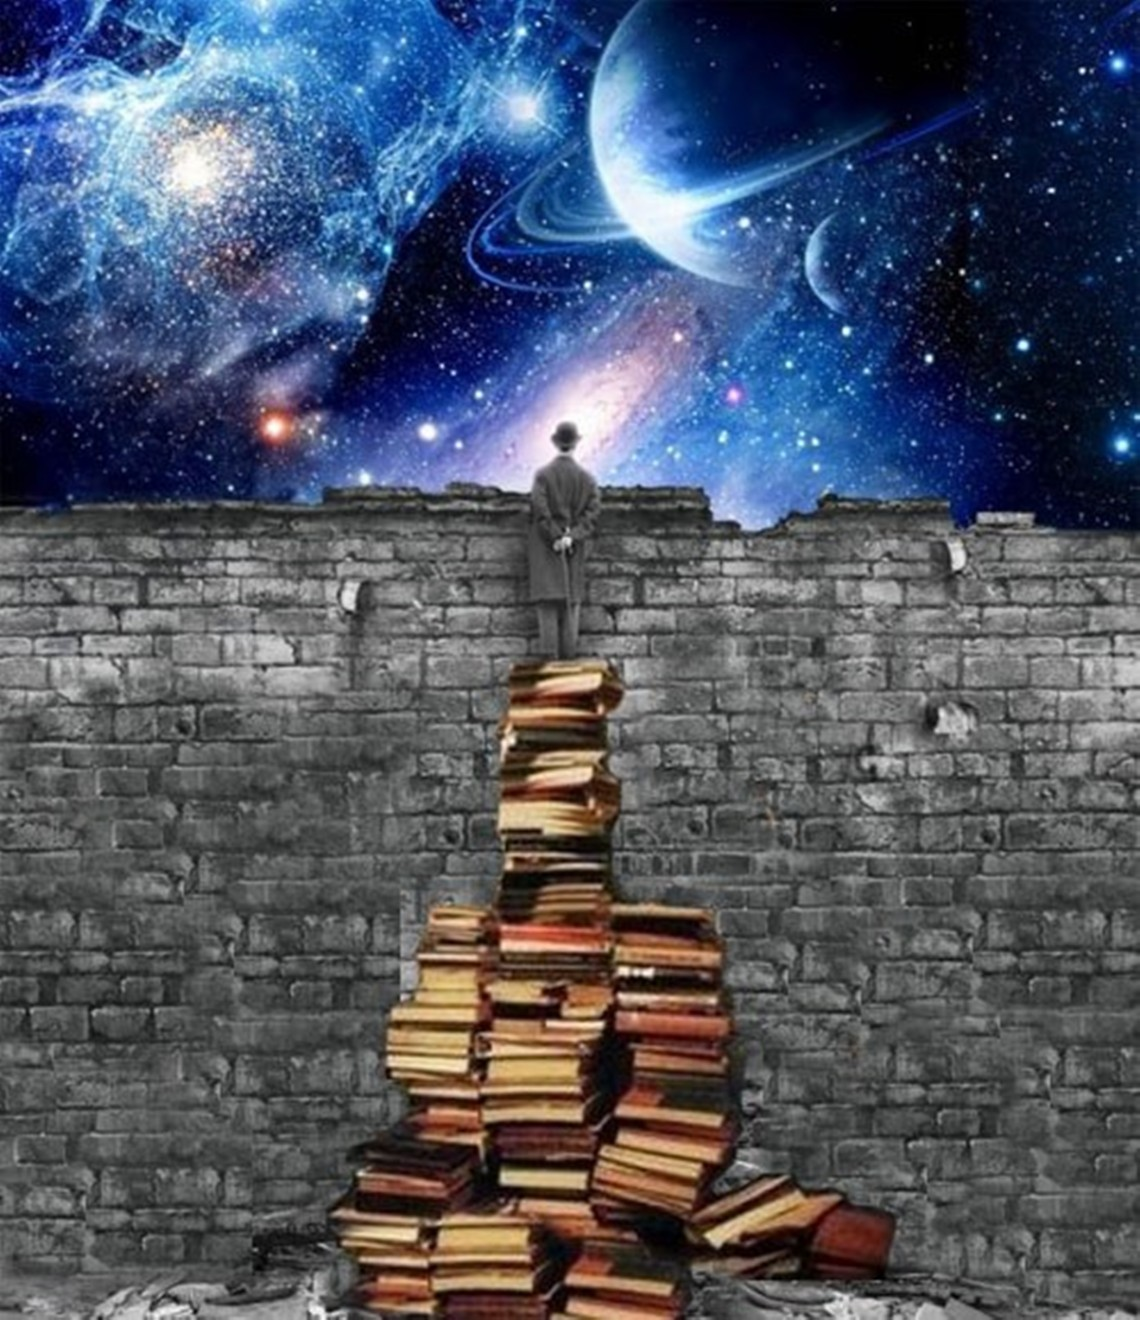 Źródło: https://jdlreflections.files.wordpress.com/2015/03/funny-books-imagination-wall.jpg